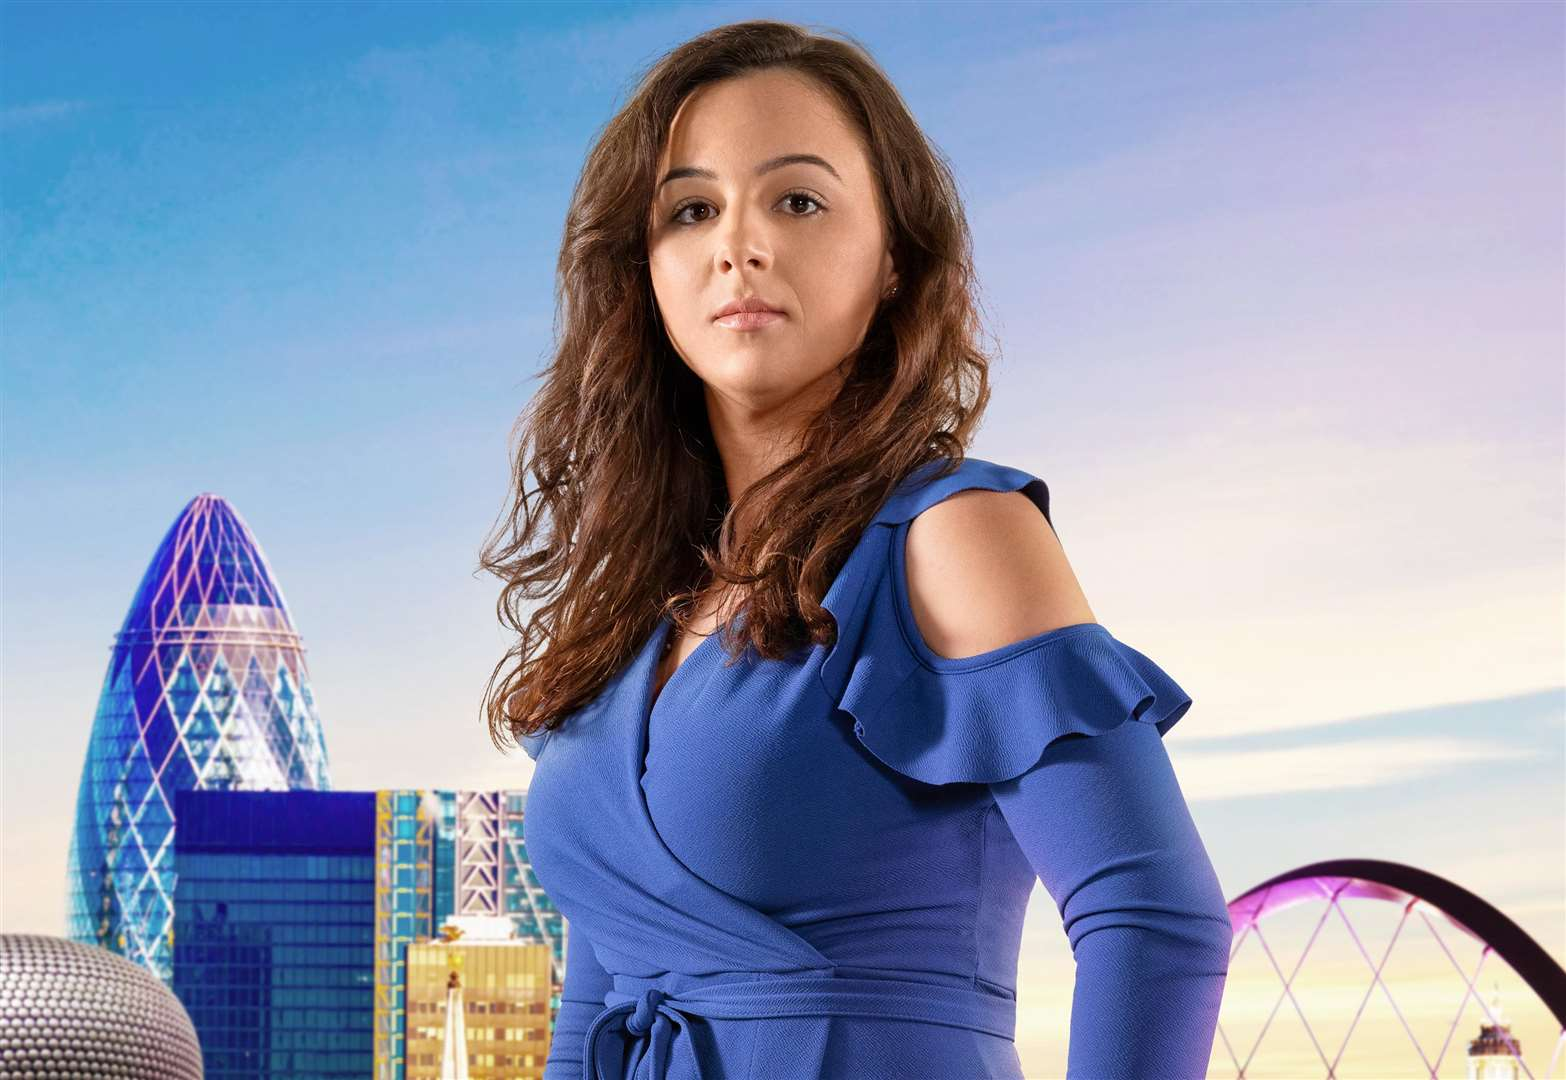 Live updates: Stamford's Khadija tears up as she's fired by Lord Sugar on The Apprentice just ahead of Sunday's BBC final